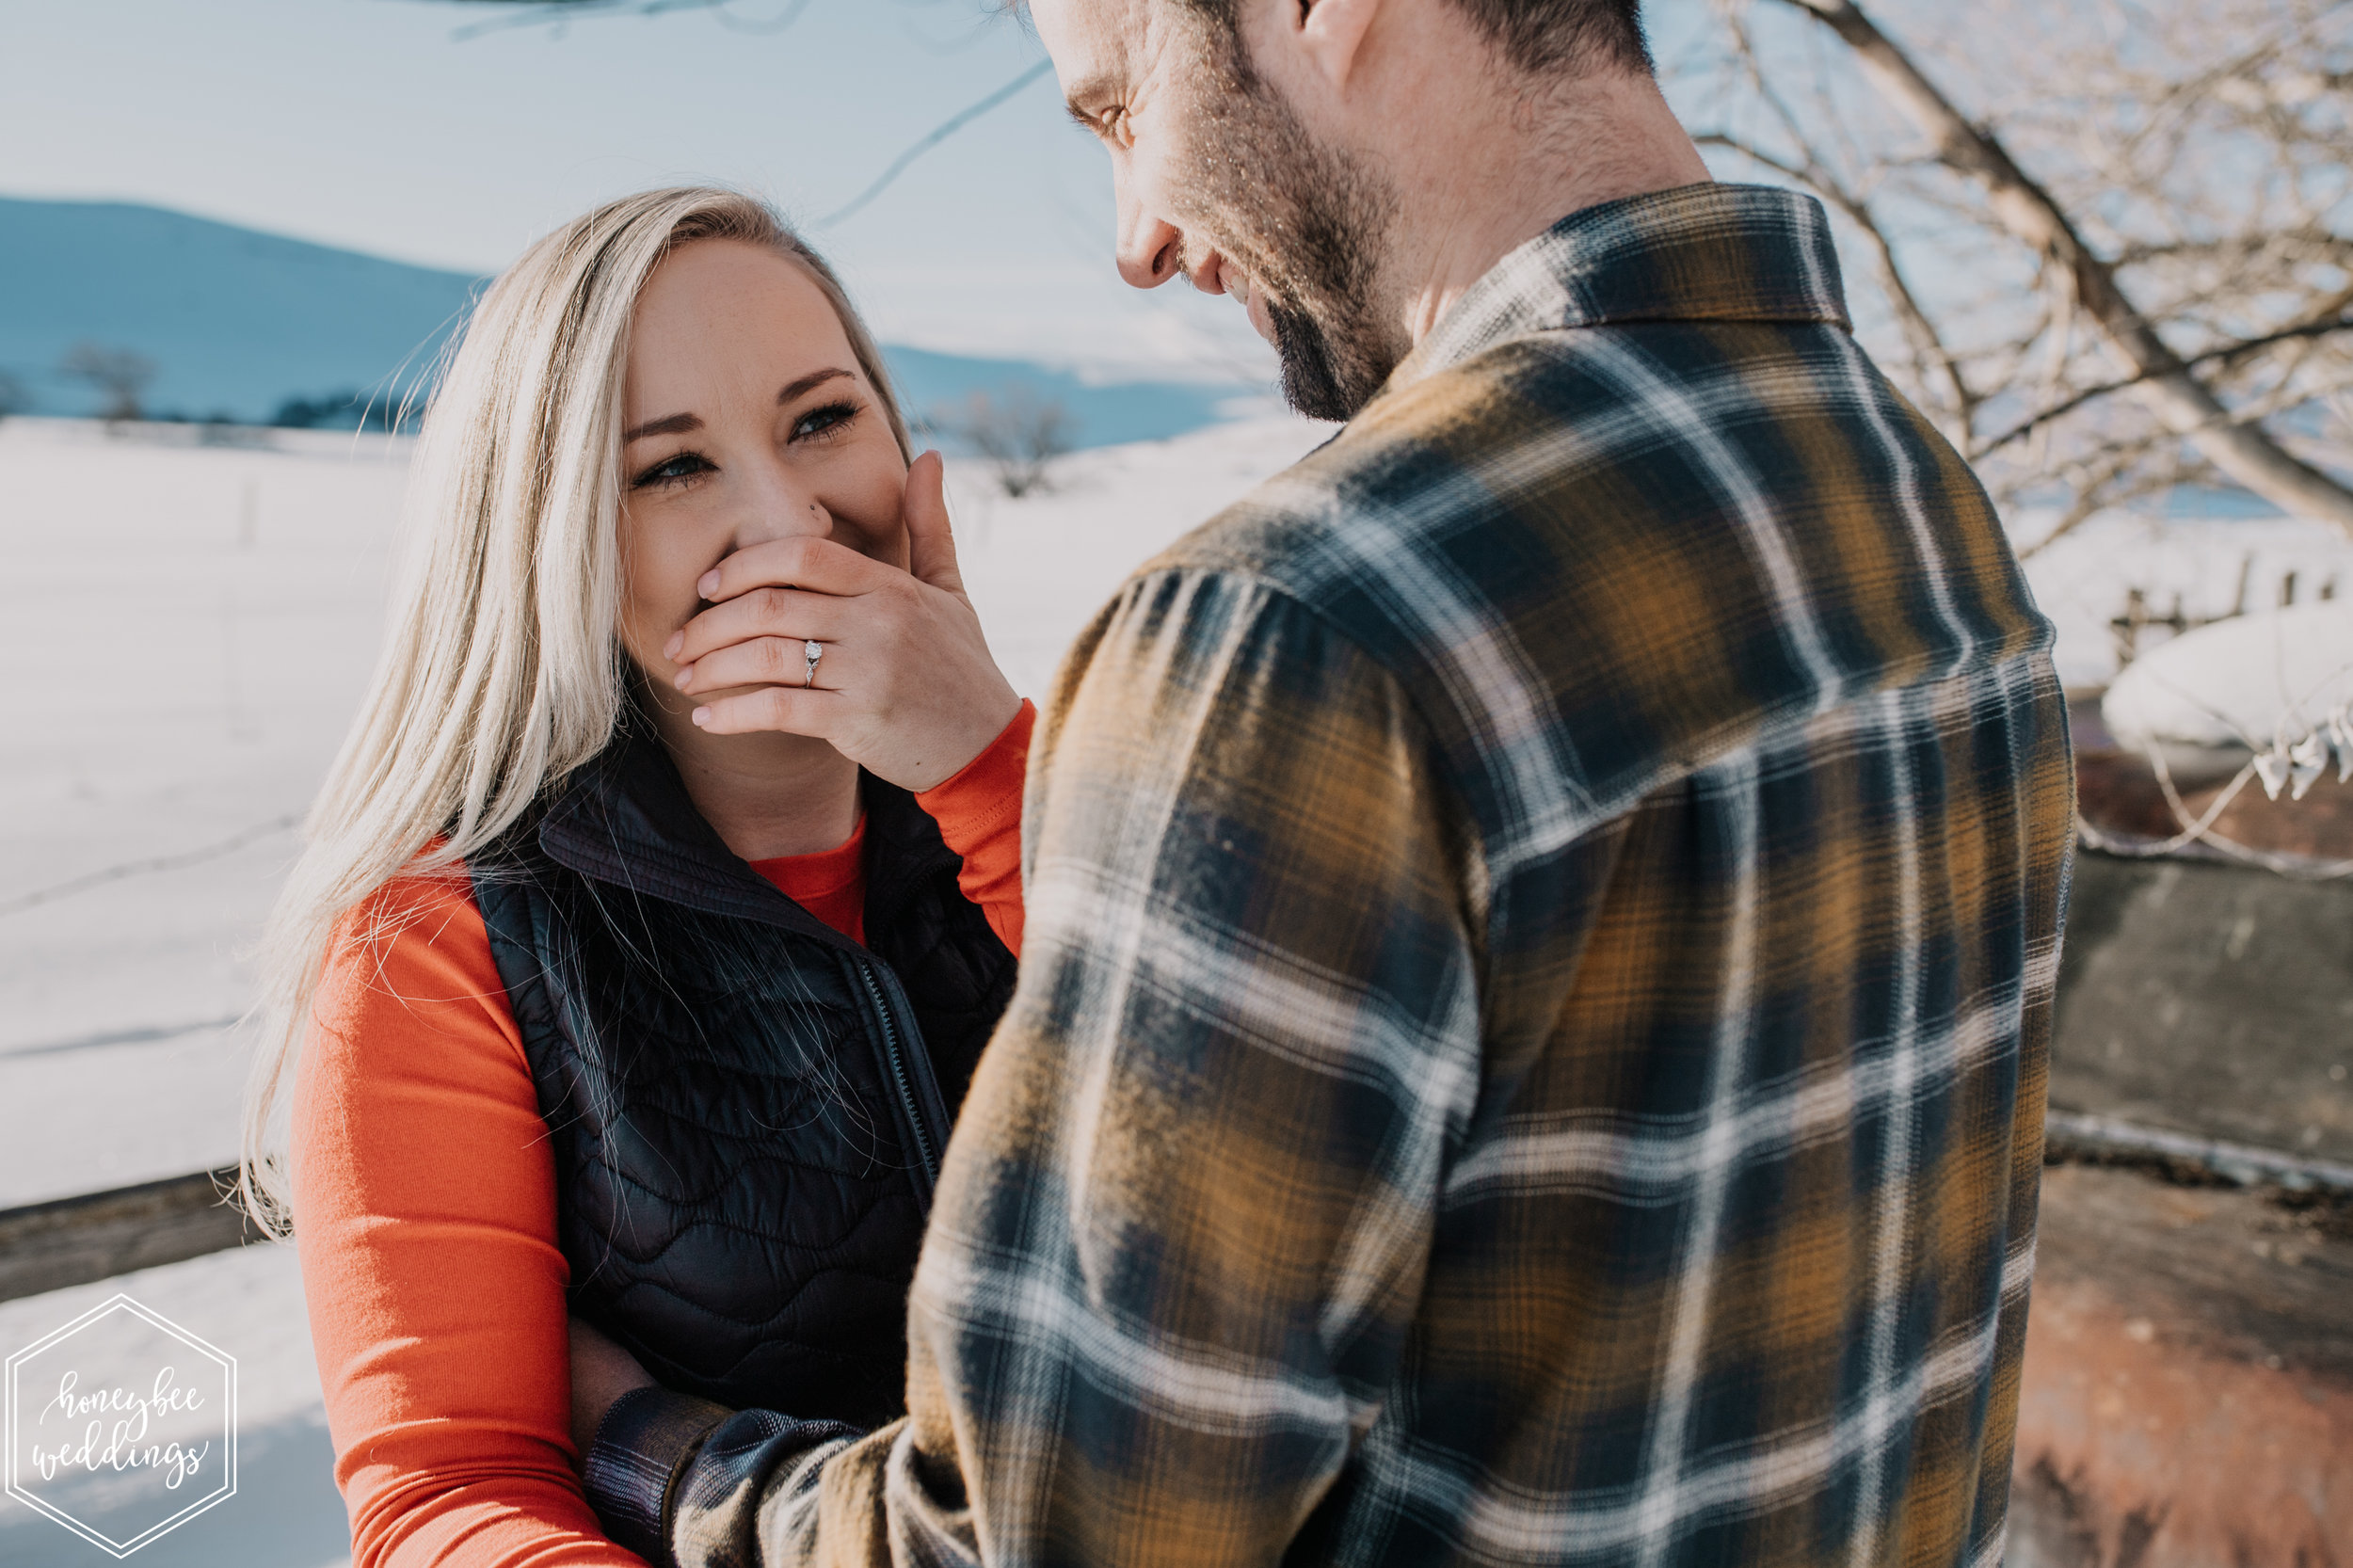 012Montana Wedding Photographer_Winter Engagement_Polson_Jessica & Brian_March 09, 2019-207.jpg